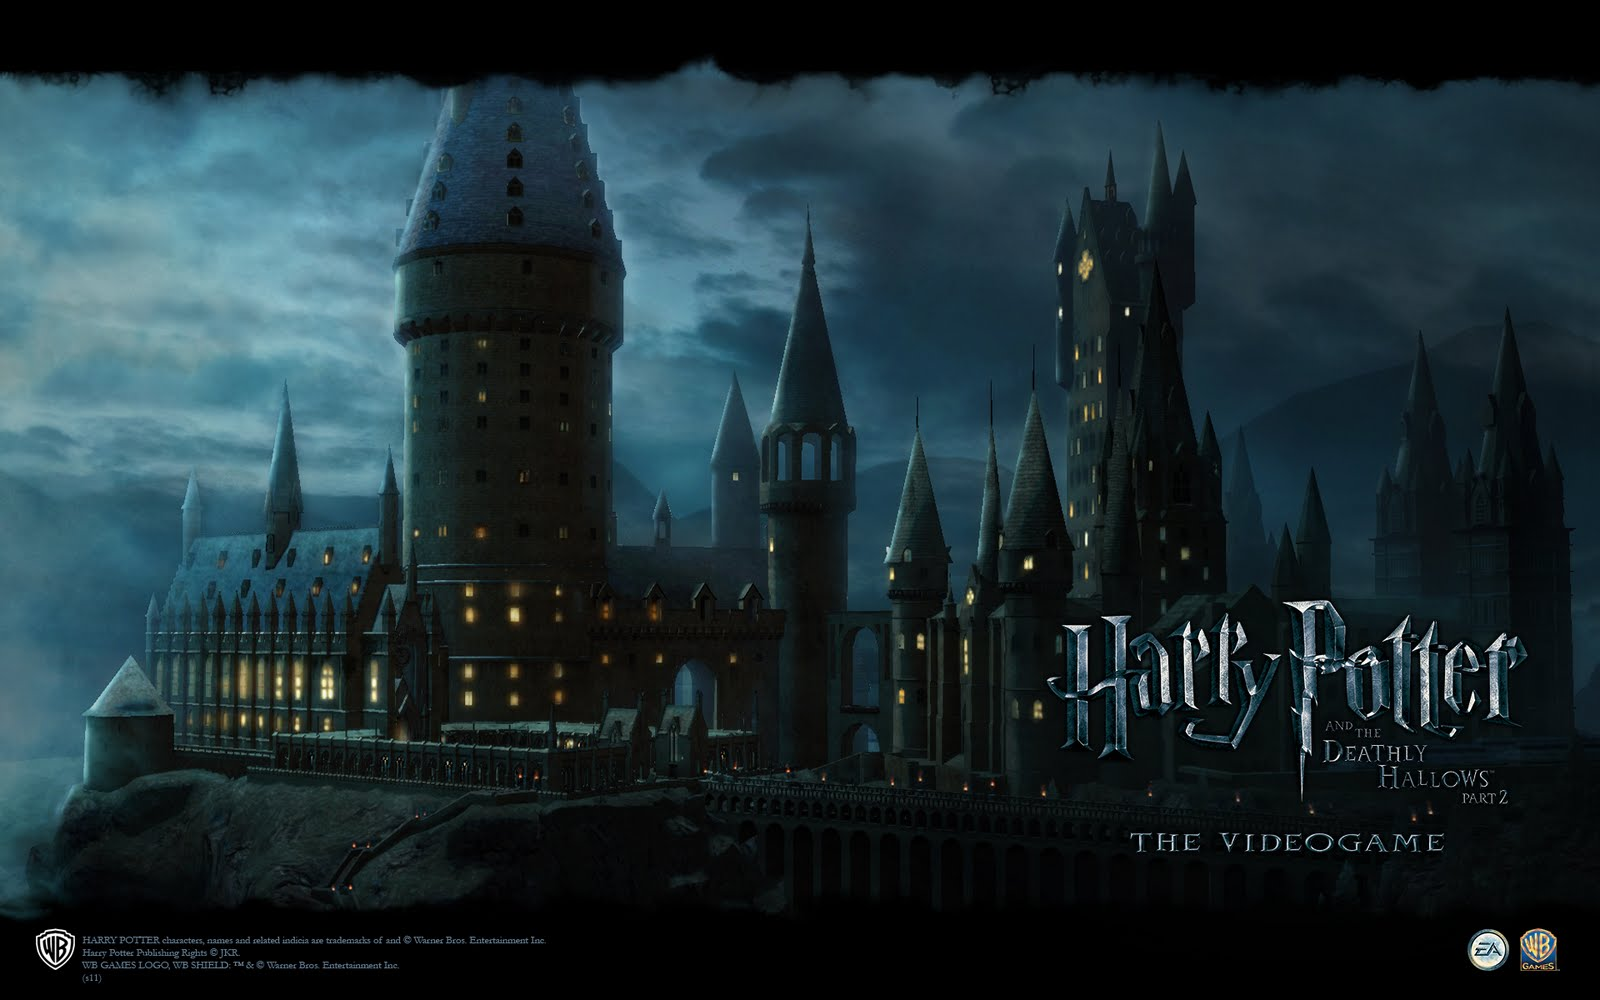 Beautiful Wallpaper Mac Harry Potter - harry-potter-and-the-deathly-hallows-part-2-game-wallpaper-hogwarts-castle  Best Photo Reference_164761.jpg